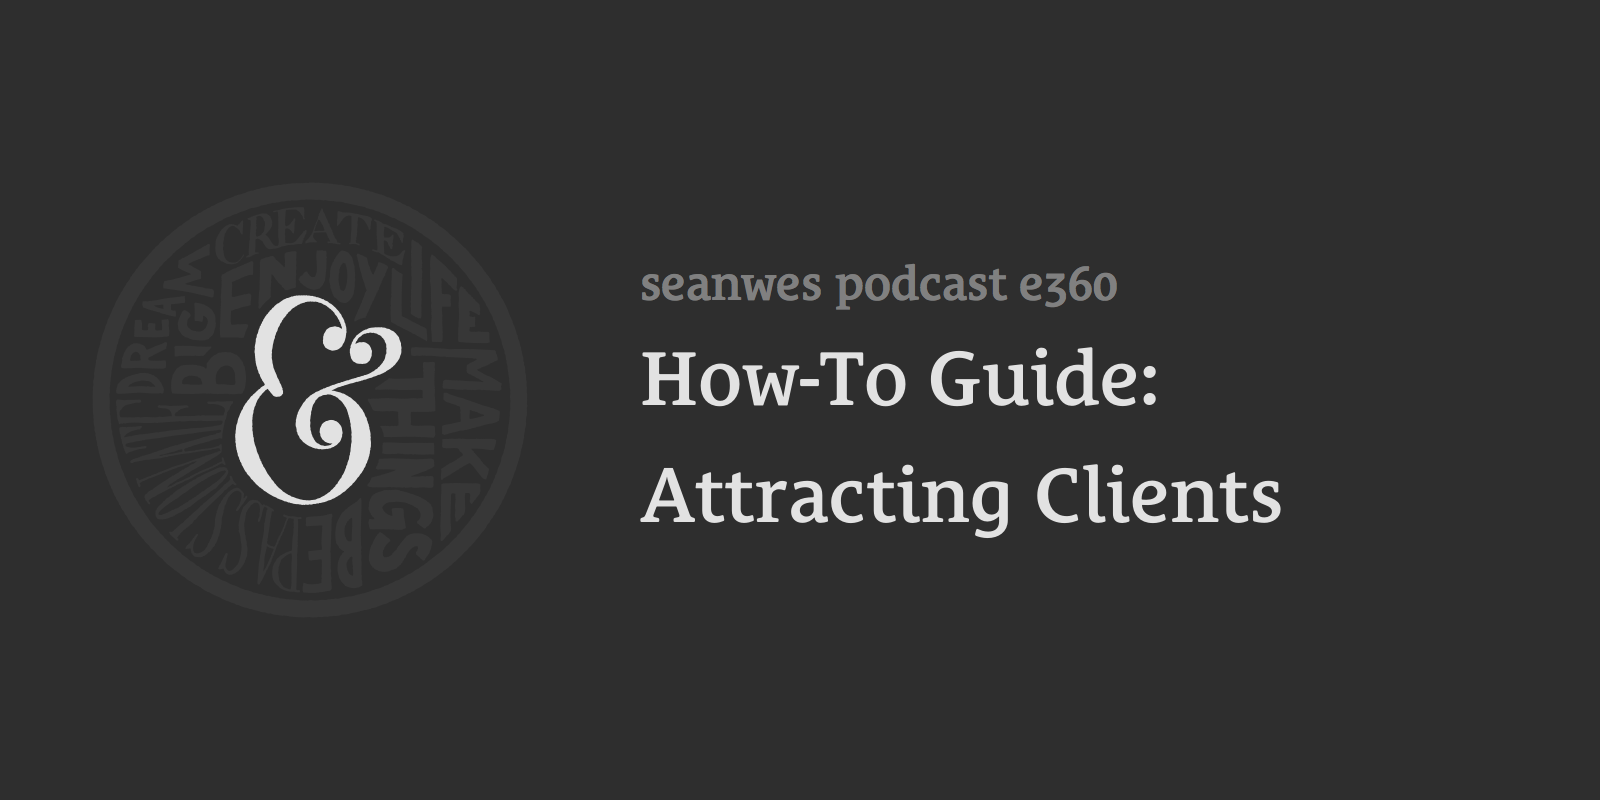 How-To Guide: Attracting Clients